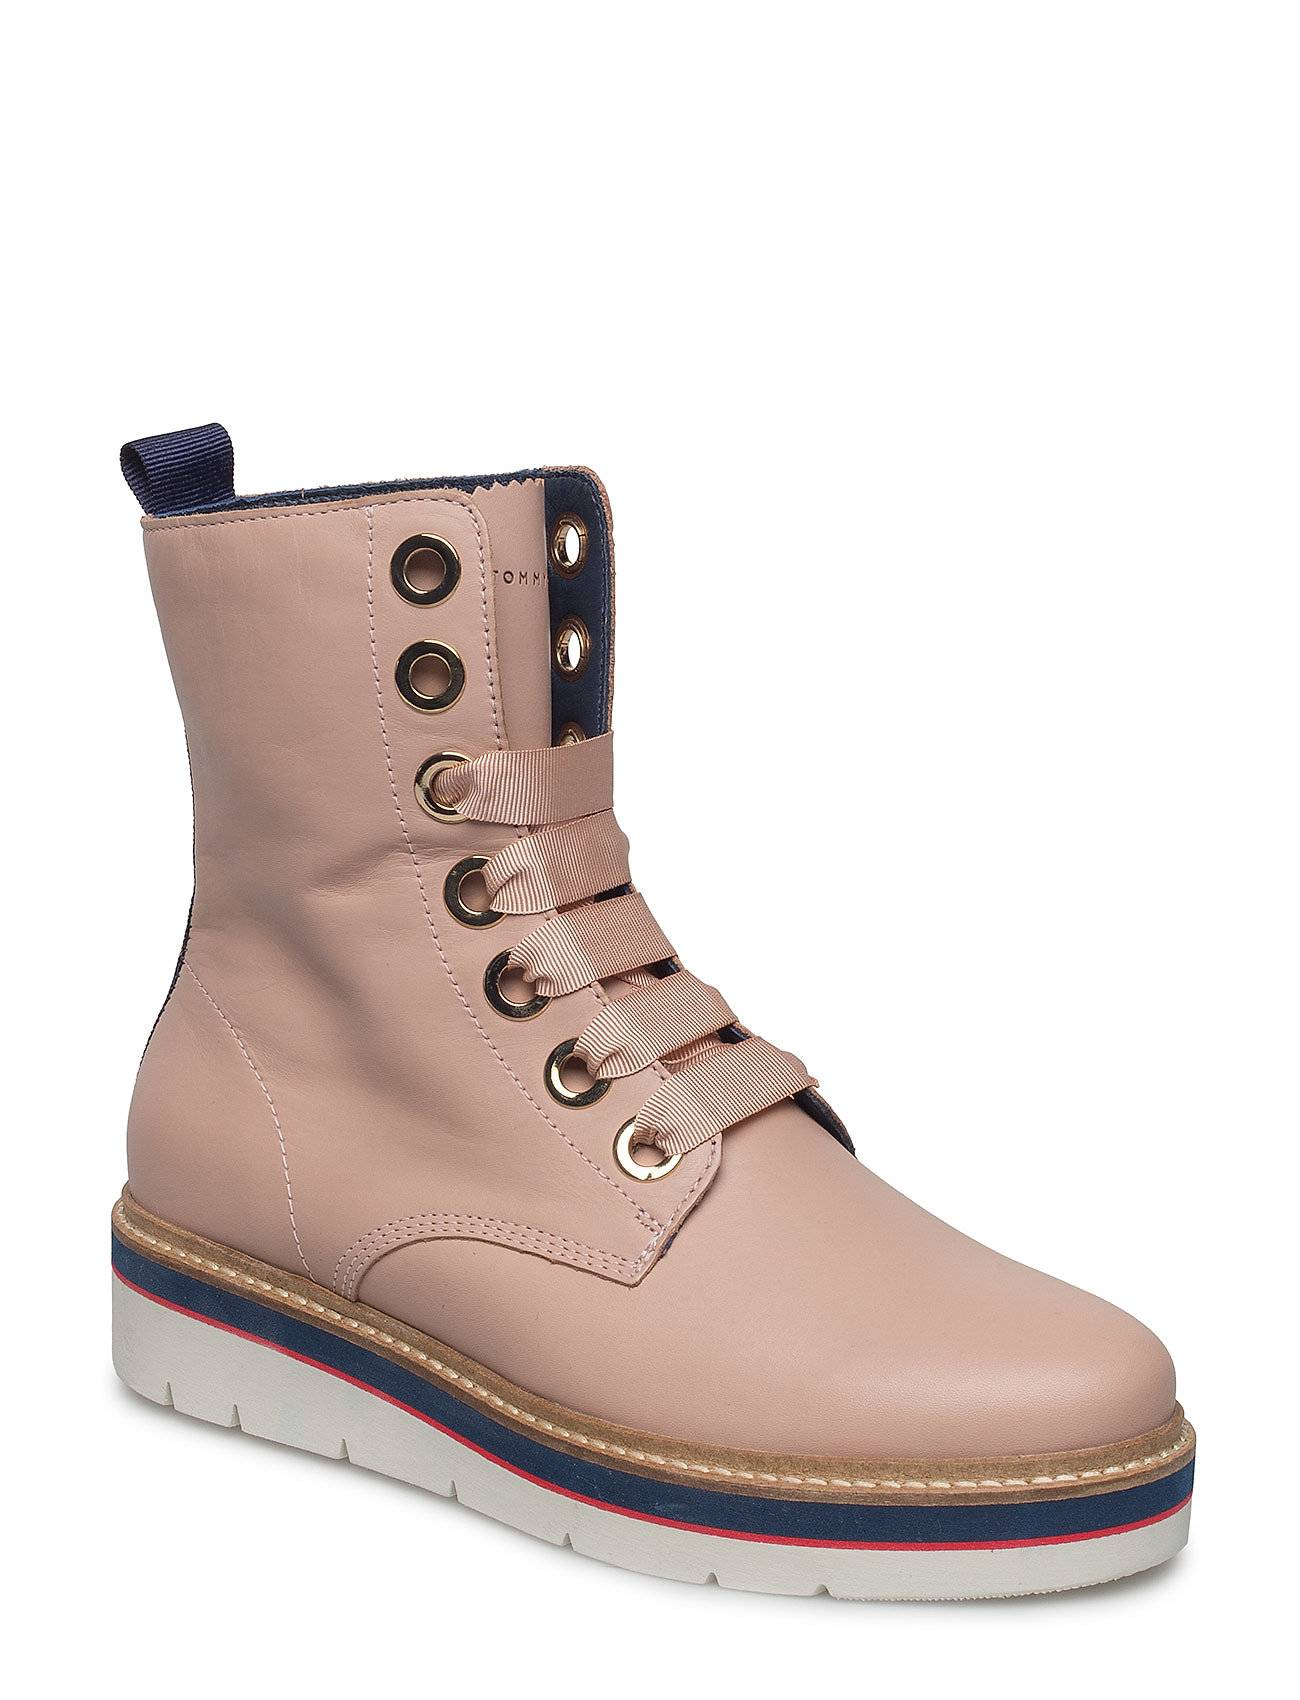 Tommy Hilfiger M1285anon 3a